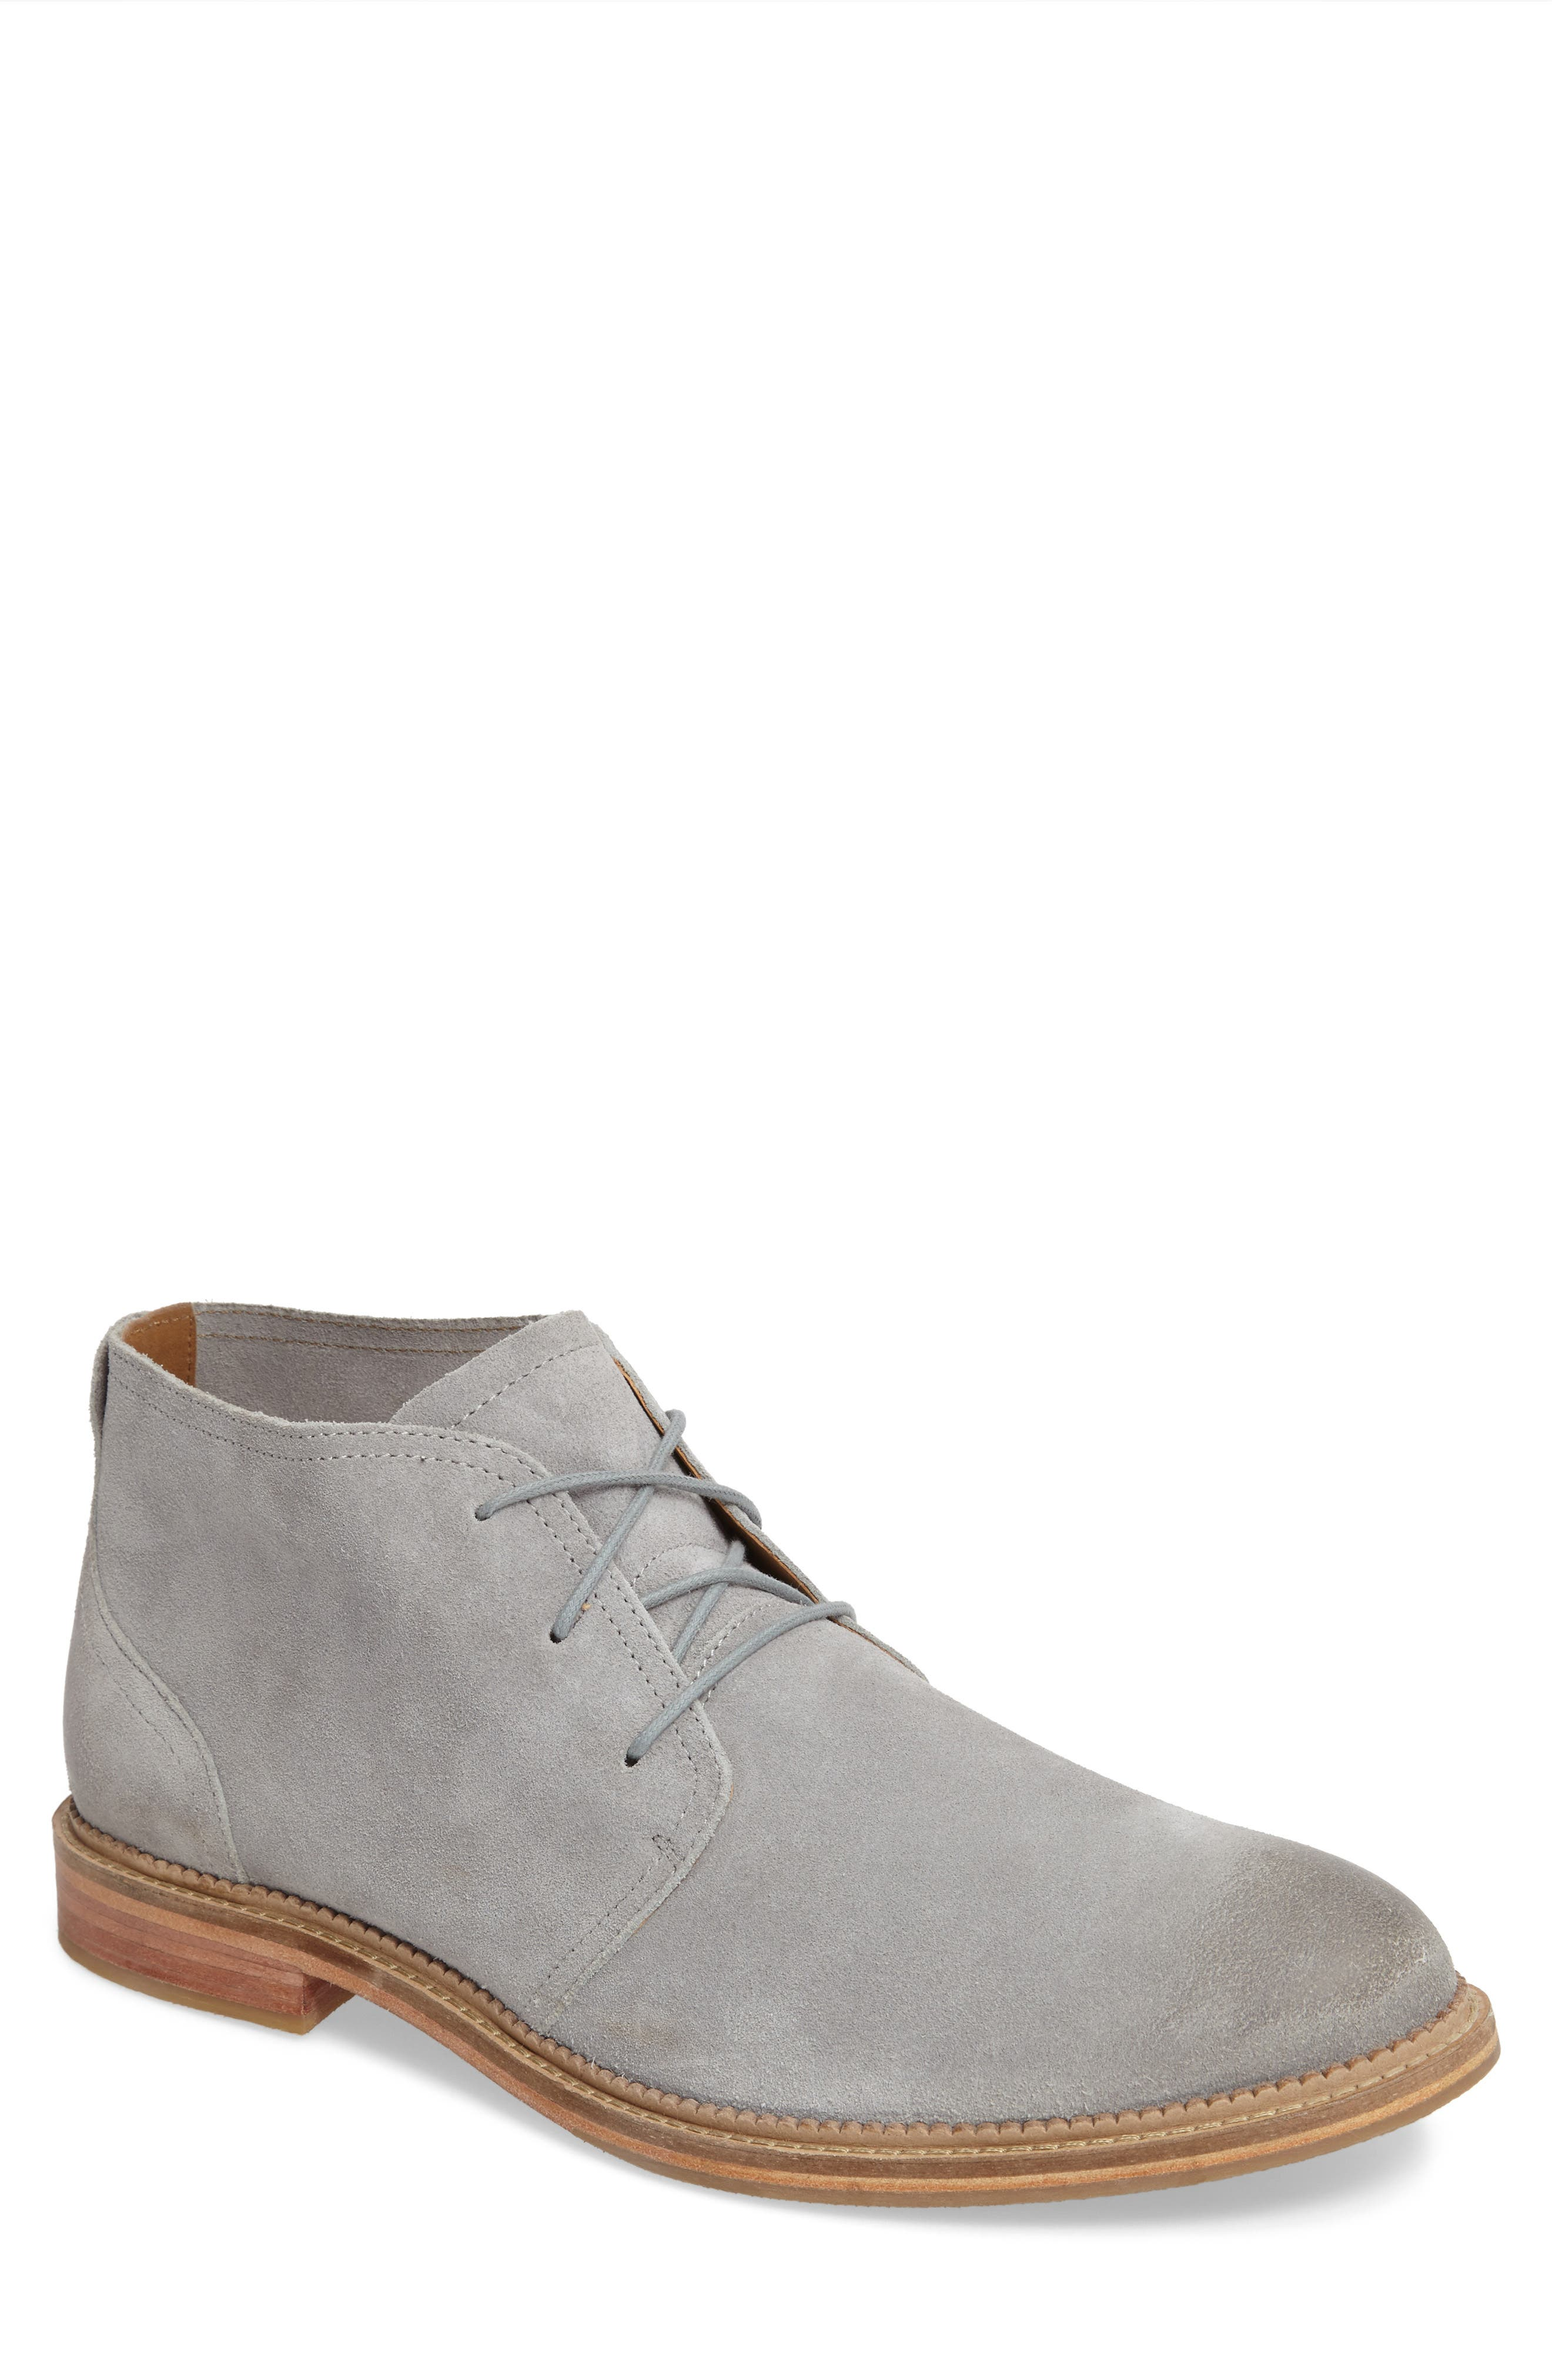 j shoes monarch plus chukka boot nordstrom